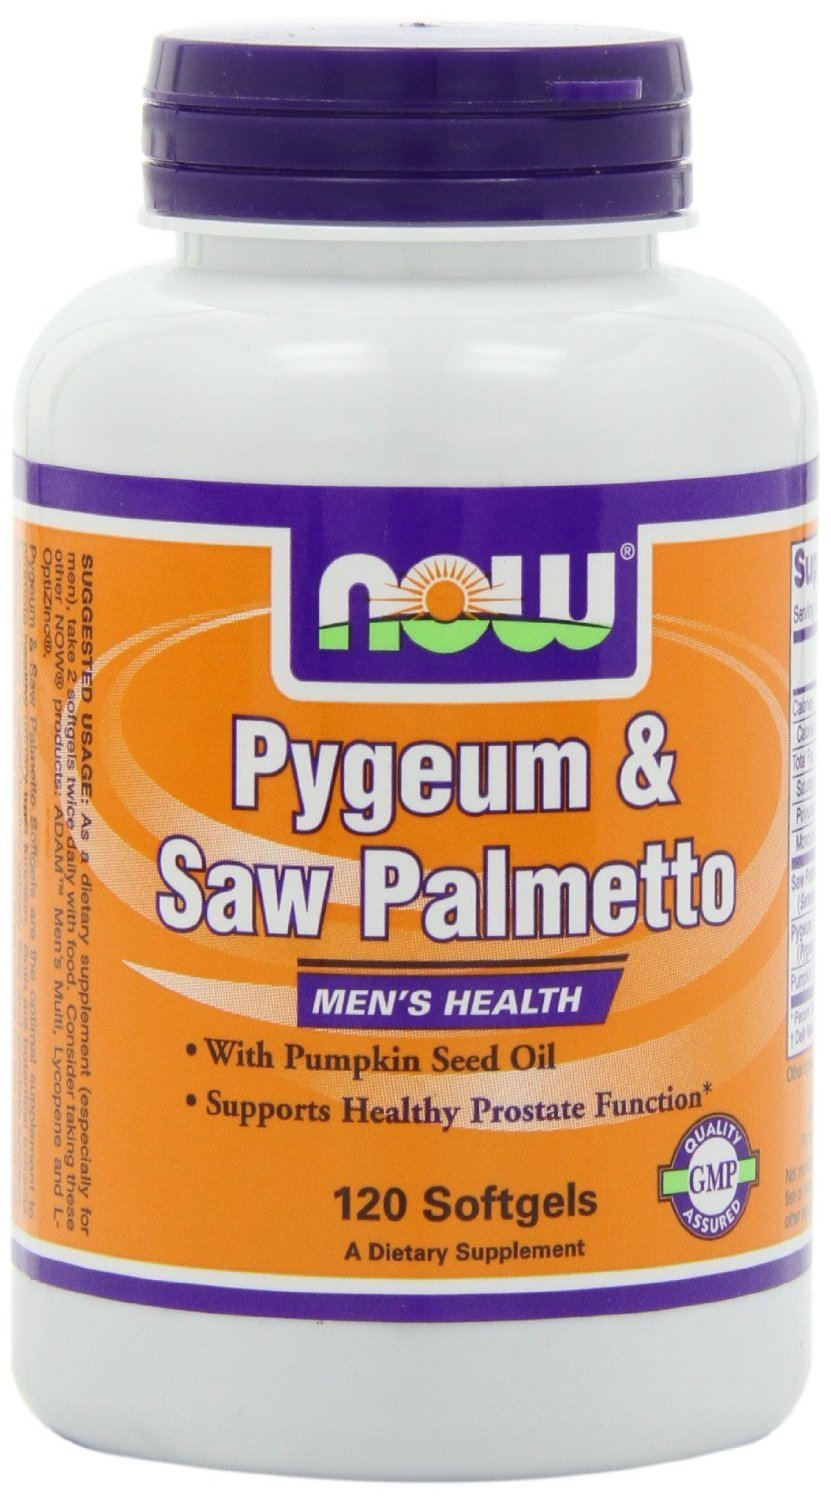 Pygeum and Saw Palmetto, 120 Softgels